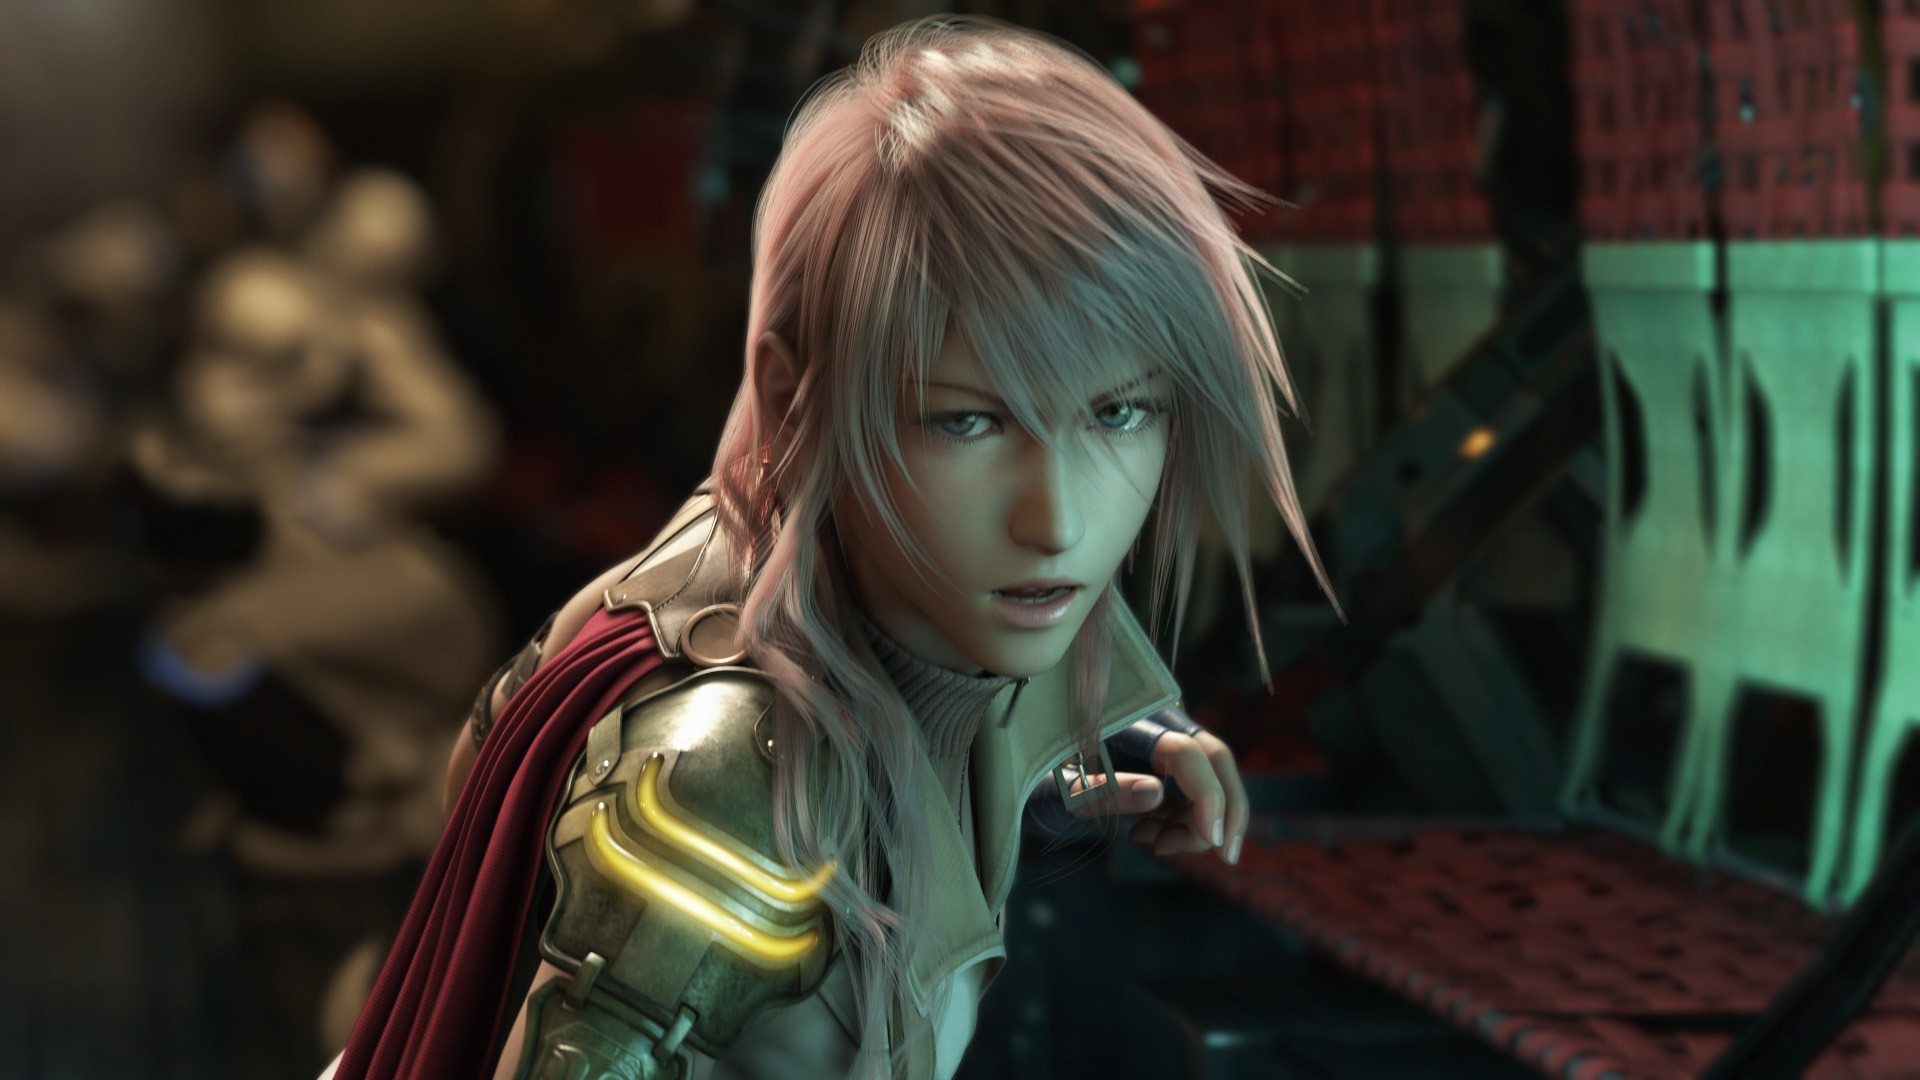 1920x1080 Final Fantasy, Final Fantasy XIII, Claire Farron, Video Games, Lightning  Wallpapers HD / Desktop and Mobile Backgrounds